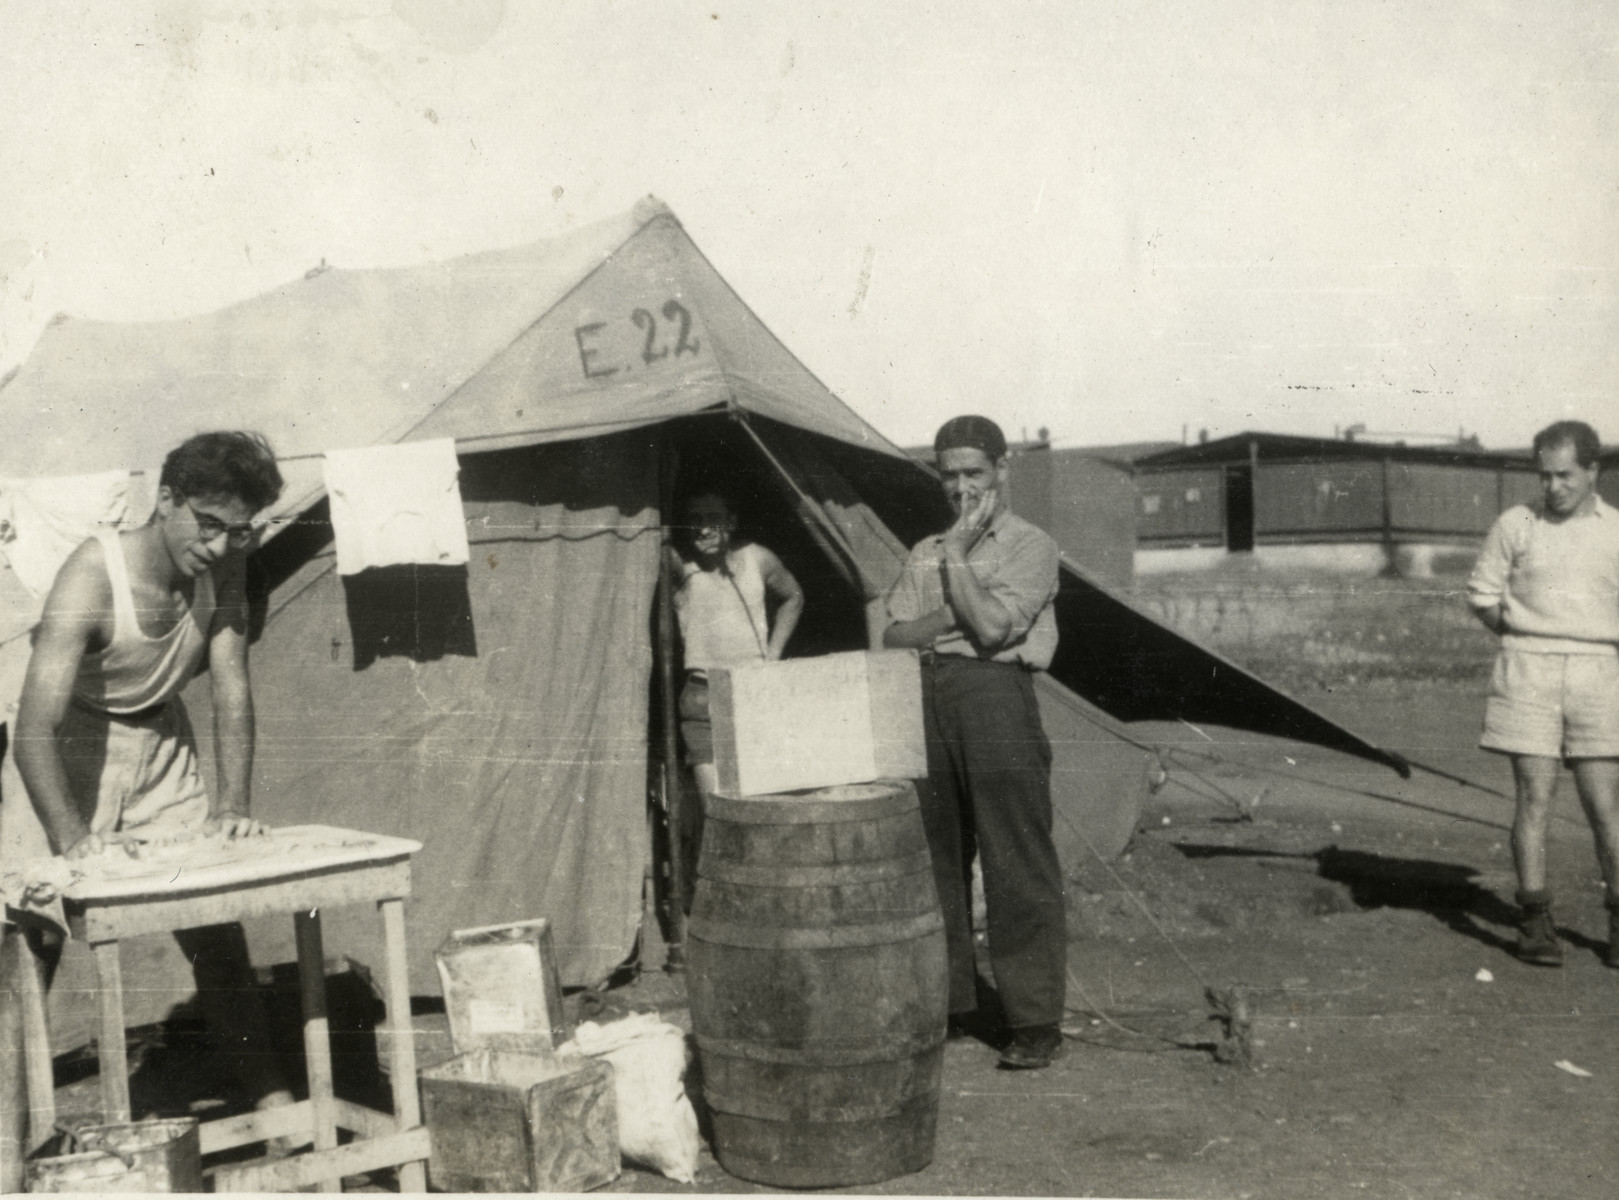 Dario Navarra, Giacomo Muttarazzi, and Moshe Dana work in front of their tent in a detention camp in Cyprus.